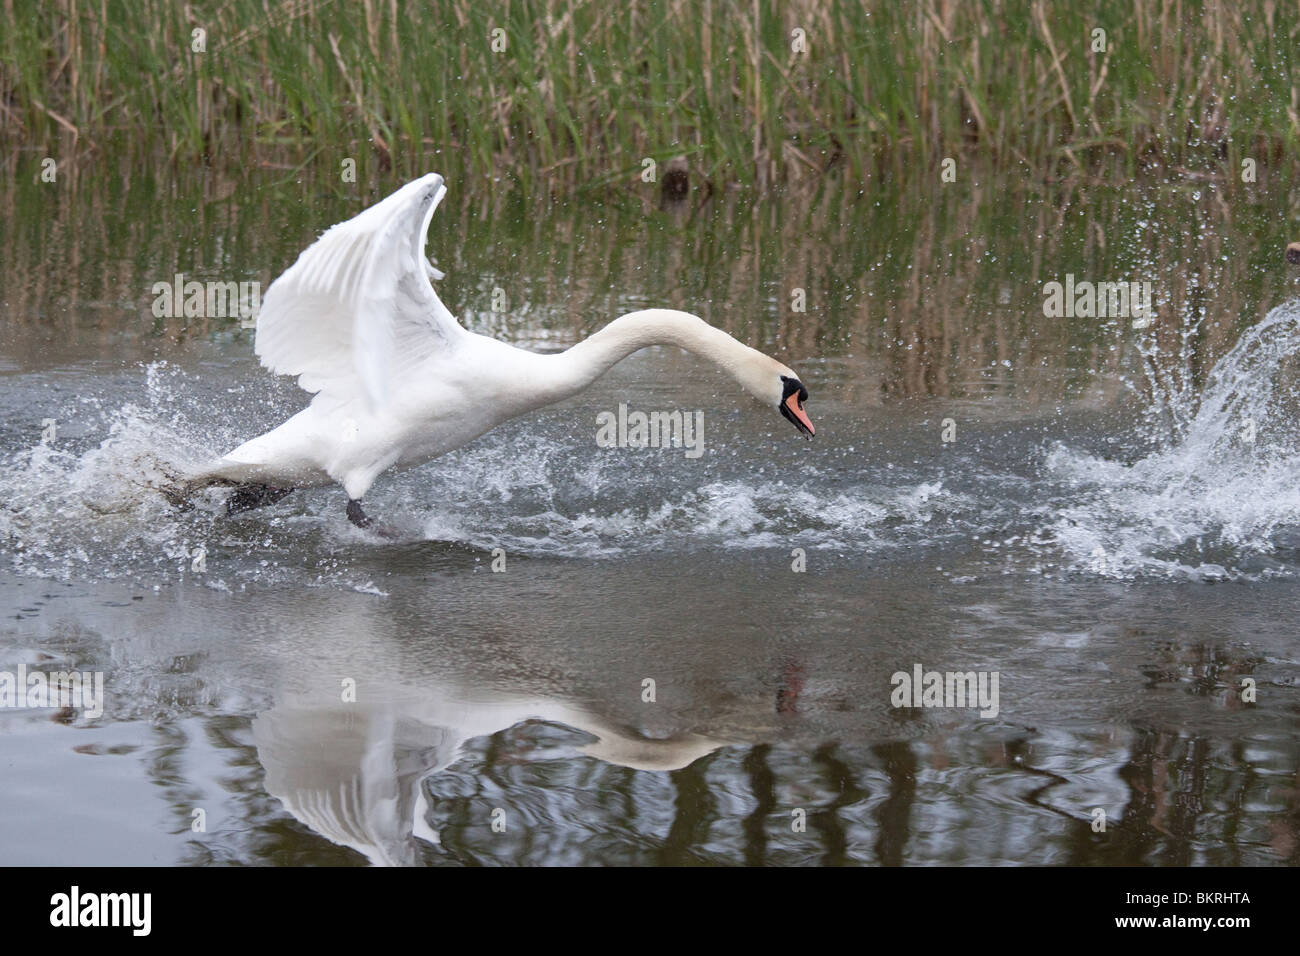 Mute swan chasing in aggressive pose in the Llangorse lake, with the water rippling and splashing against a background - Stock Image